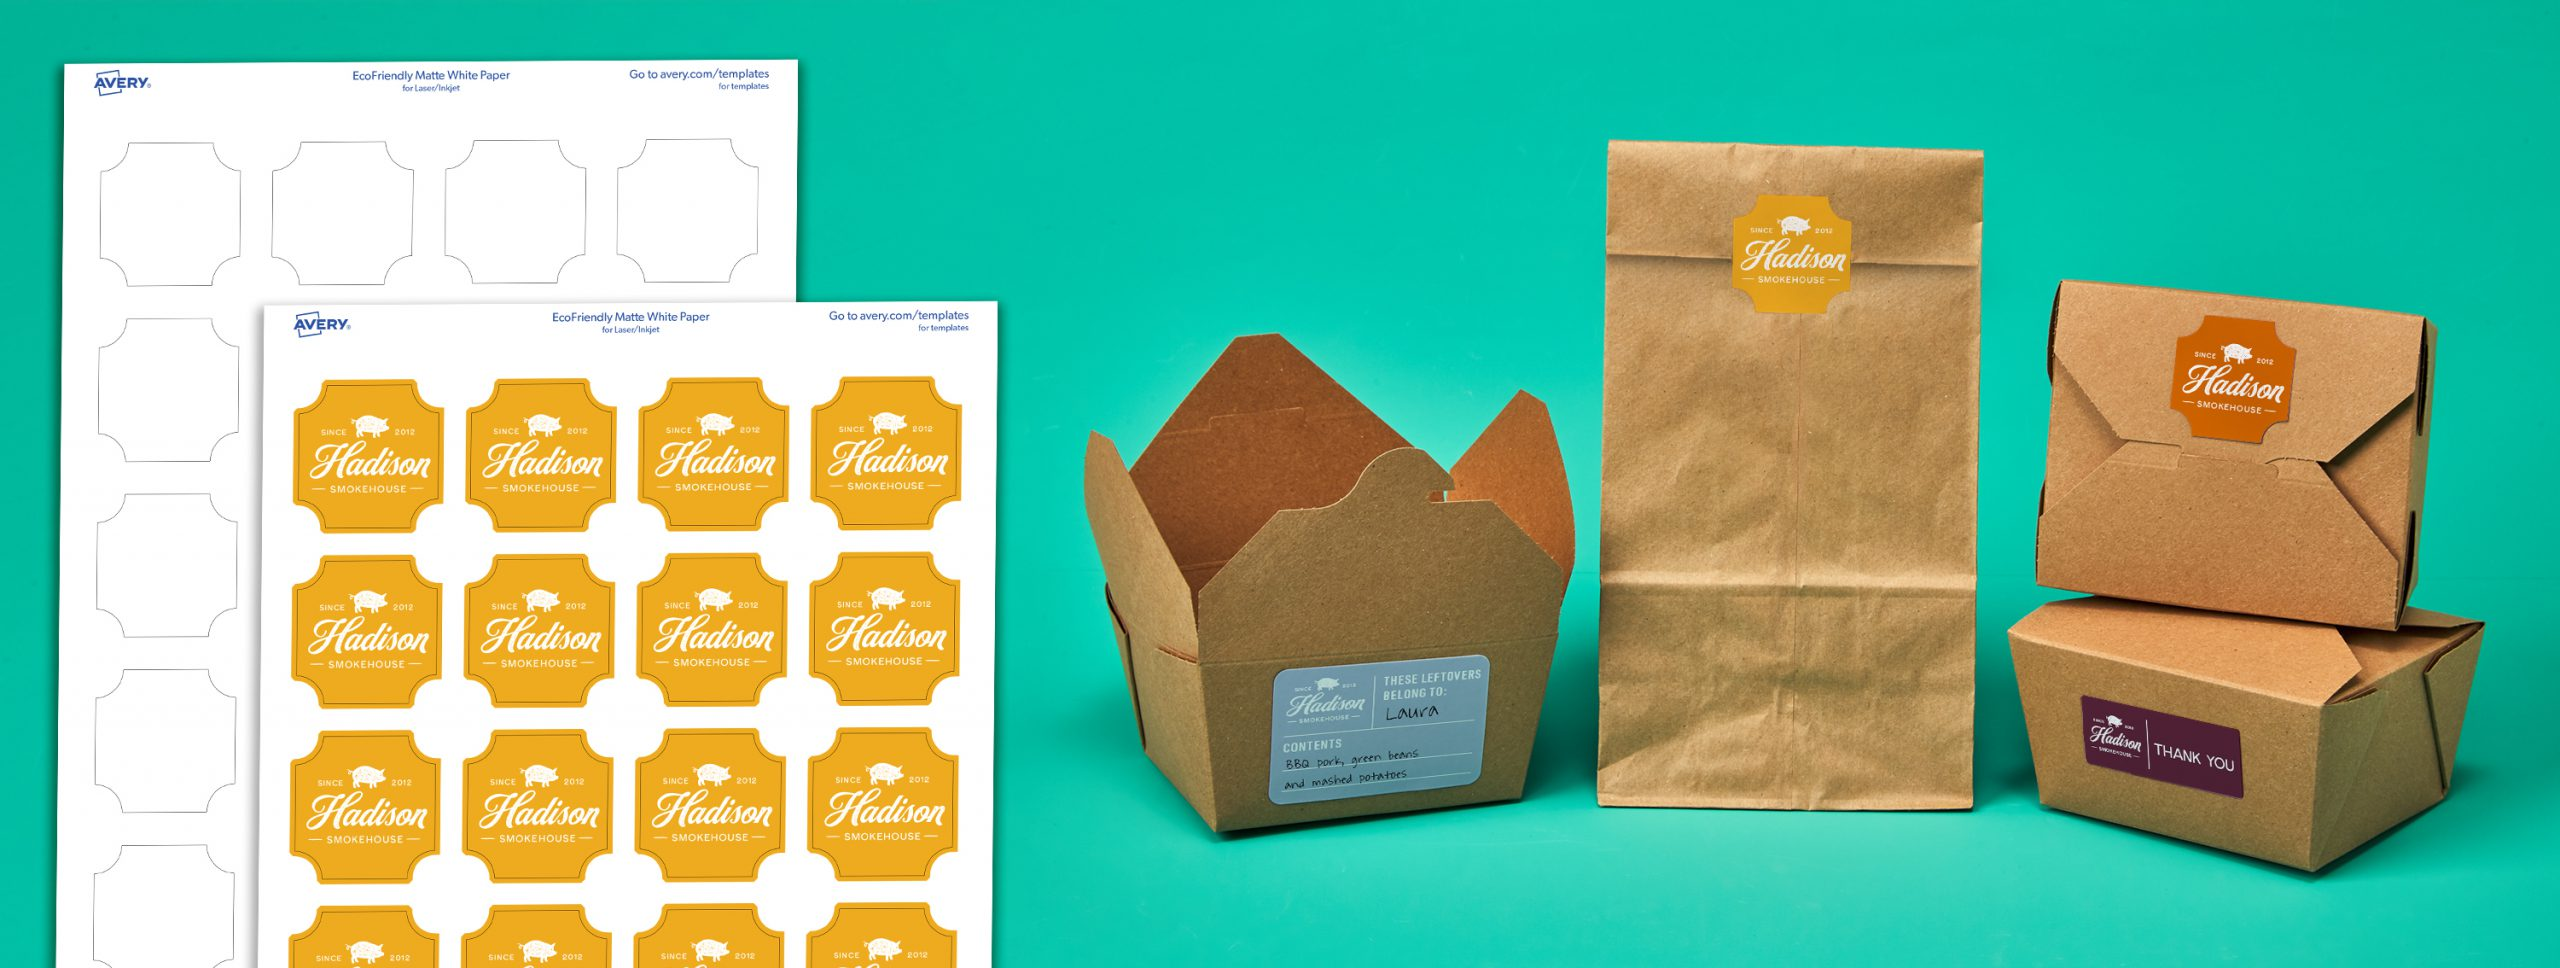 Avery Eco-friendly Sheet Labels used by Restaurant on take out containers and bags